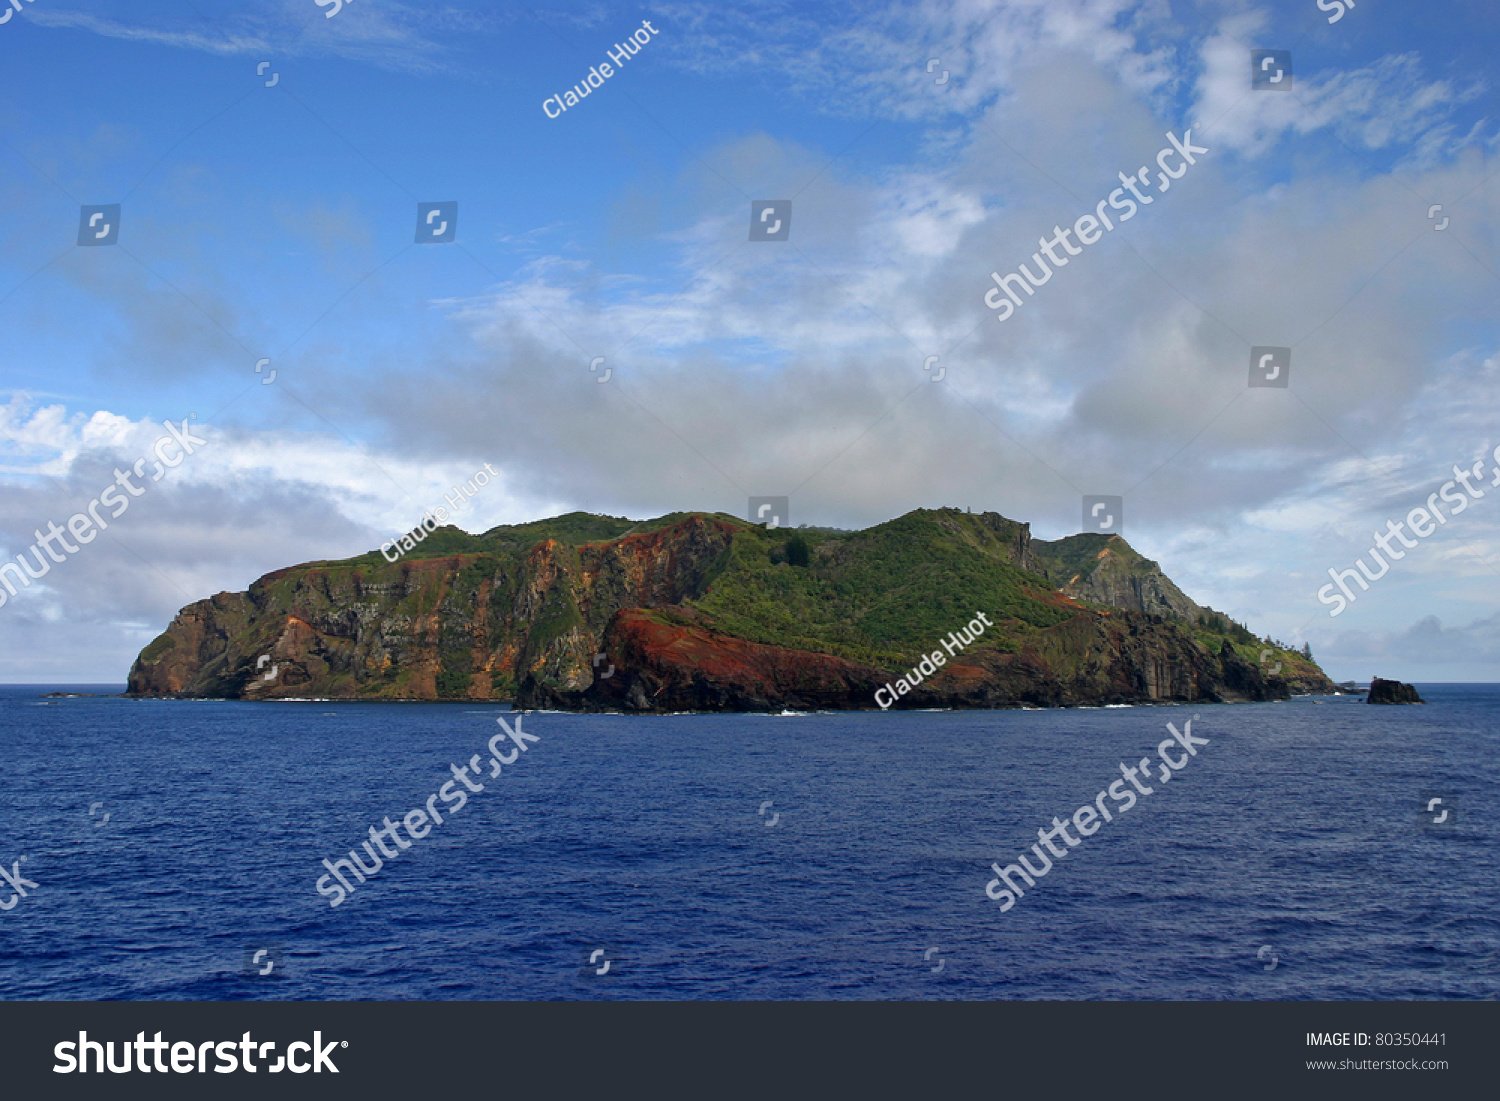 Pitcairn Island is a volcanic island and the last of the British Territories in the South Pacific ocean